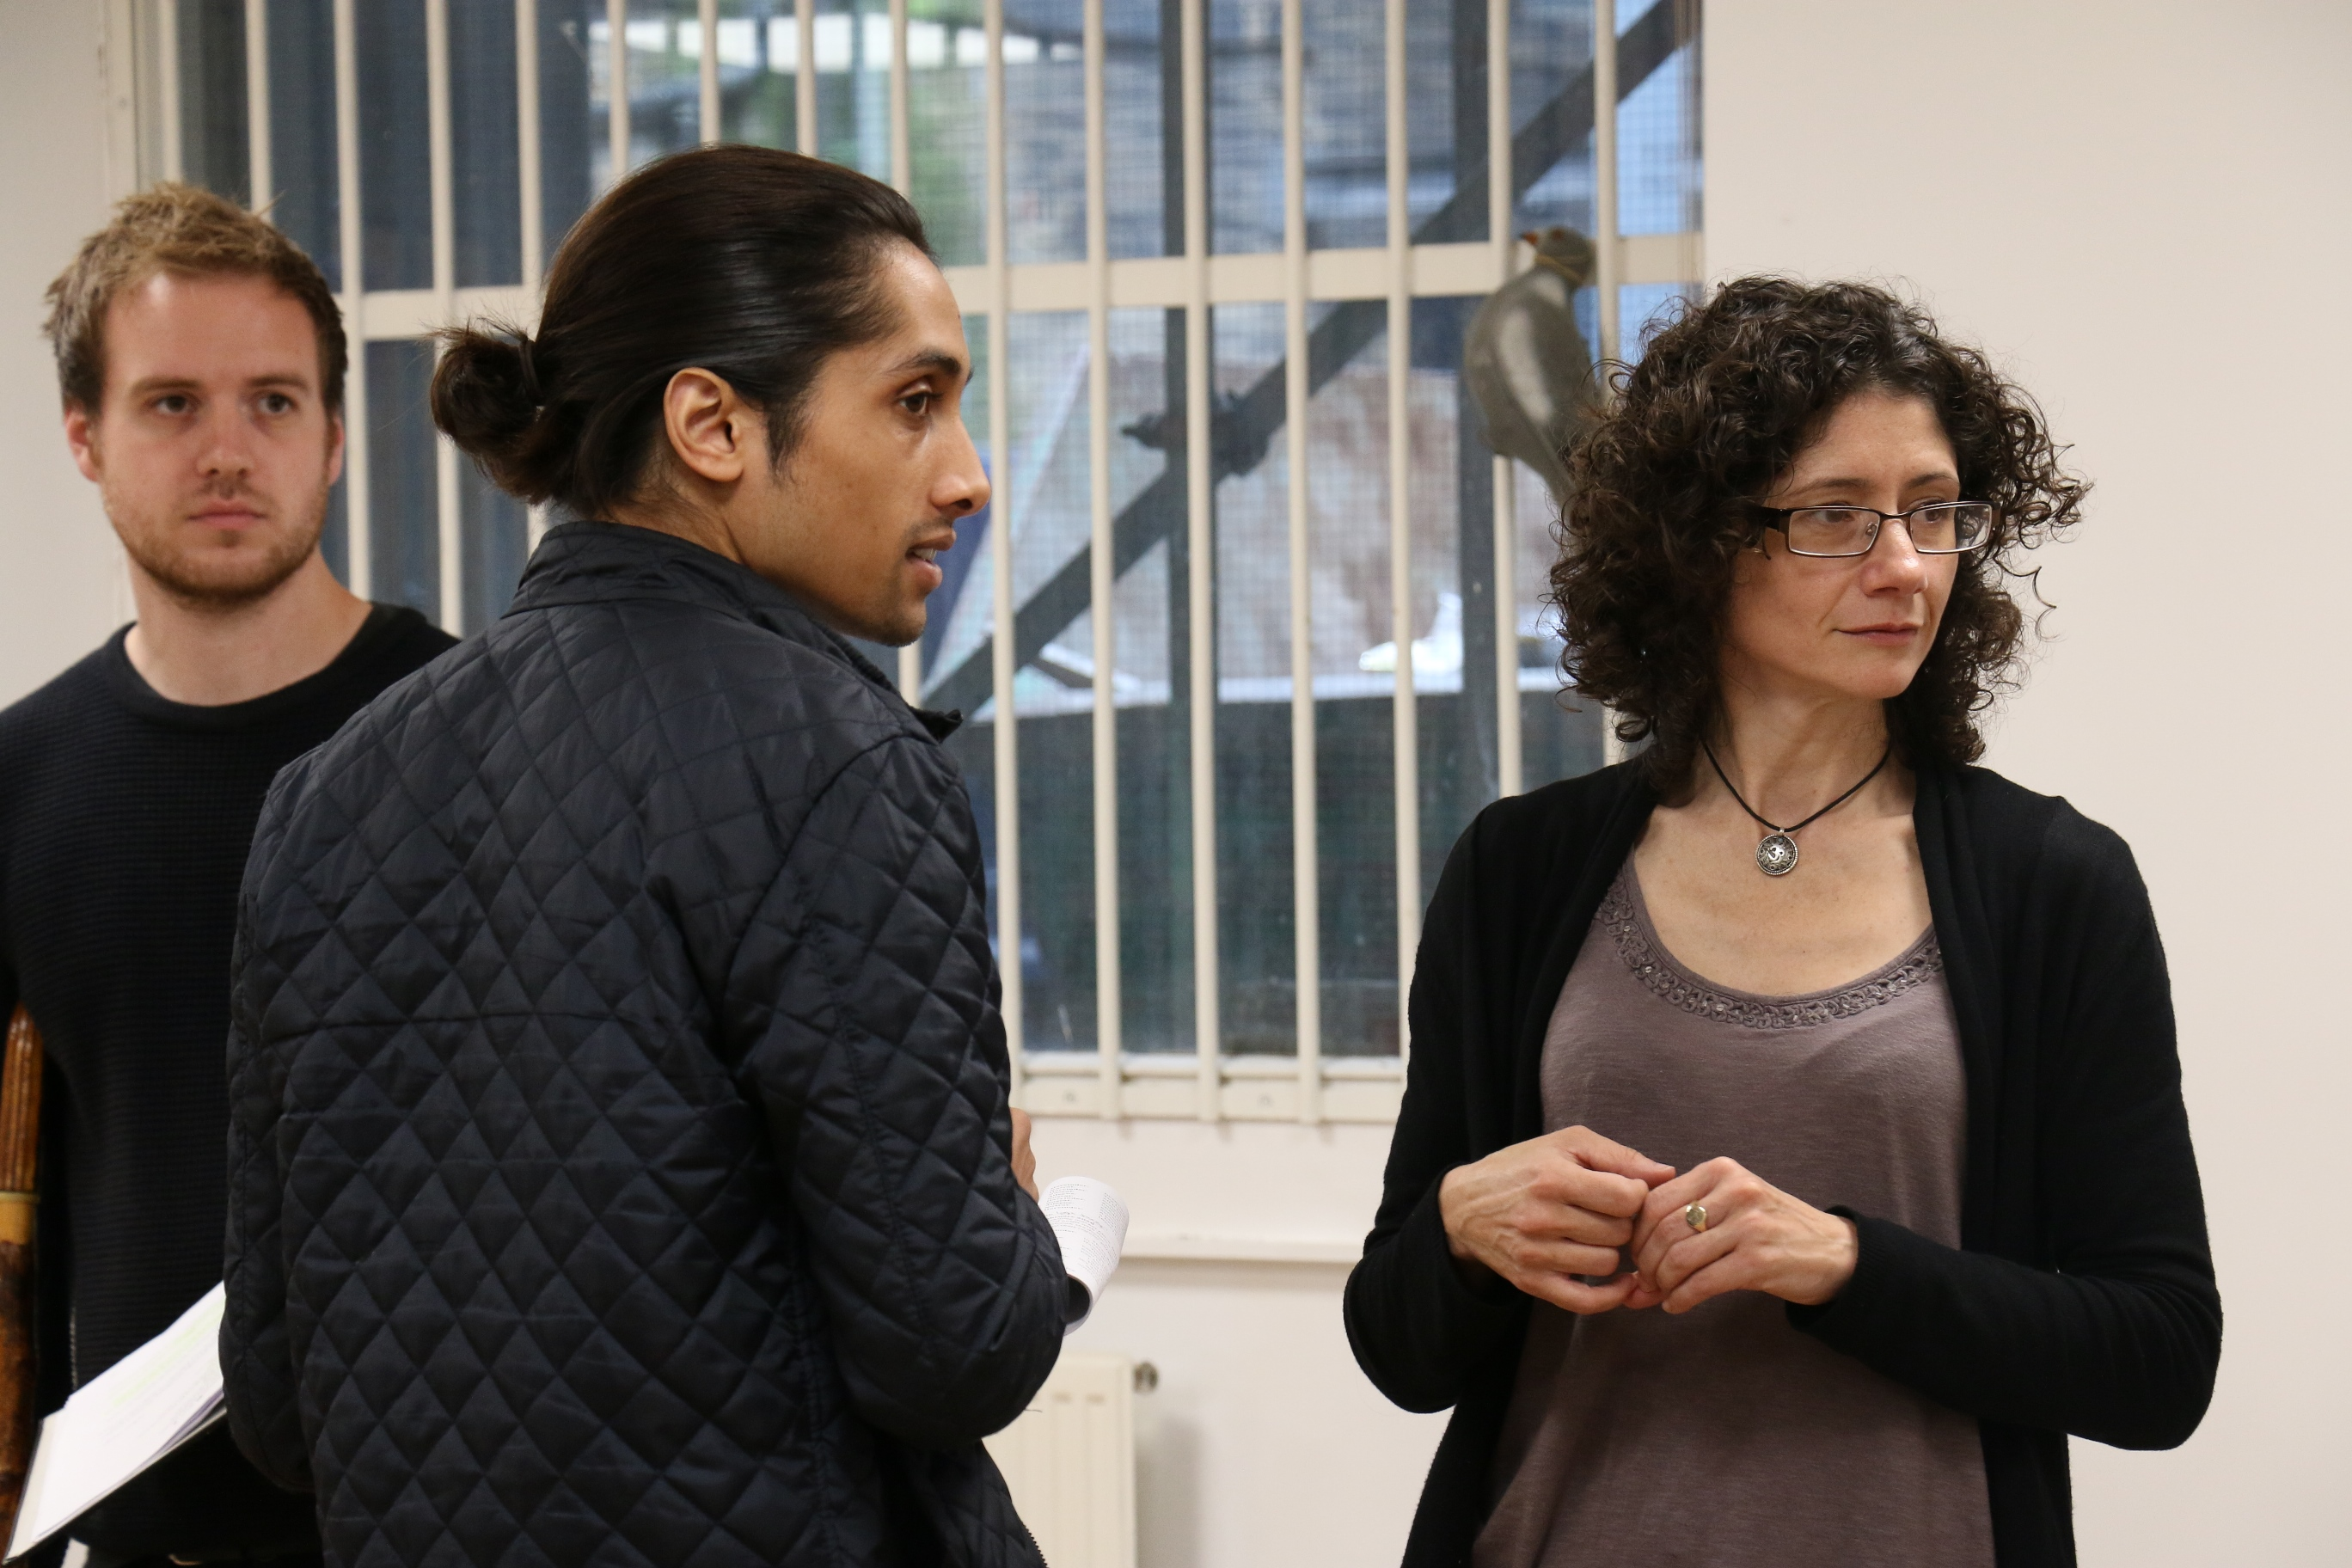 Philip Duguid-McQuilan, Kaamal Kaan and director Alex Chisholm - Photo by Maria Spadafora